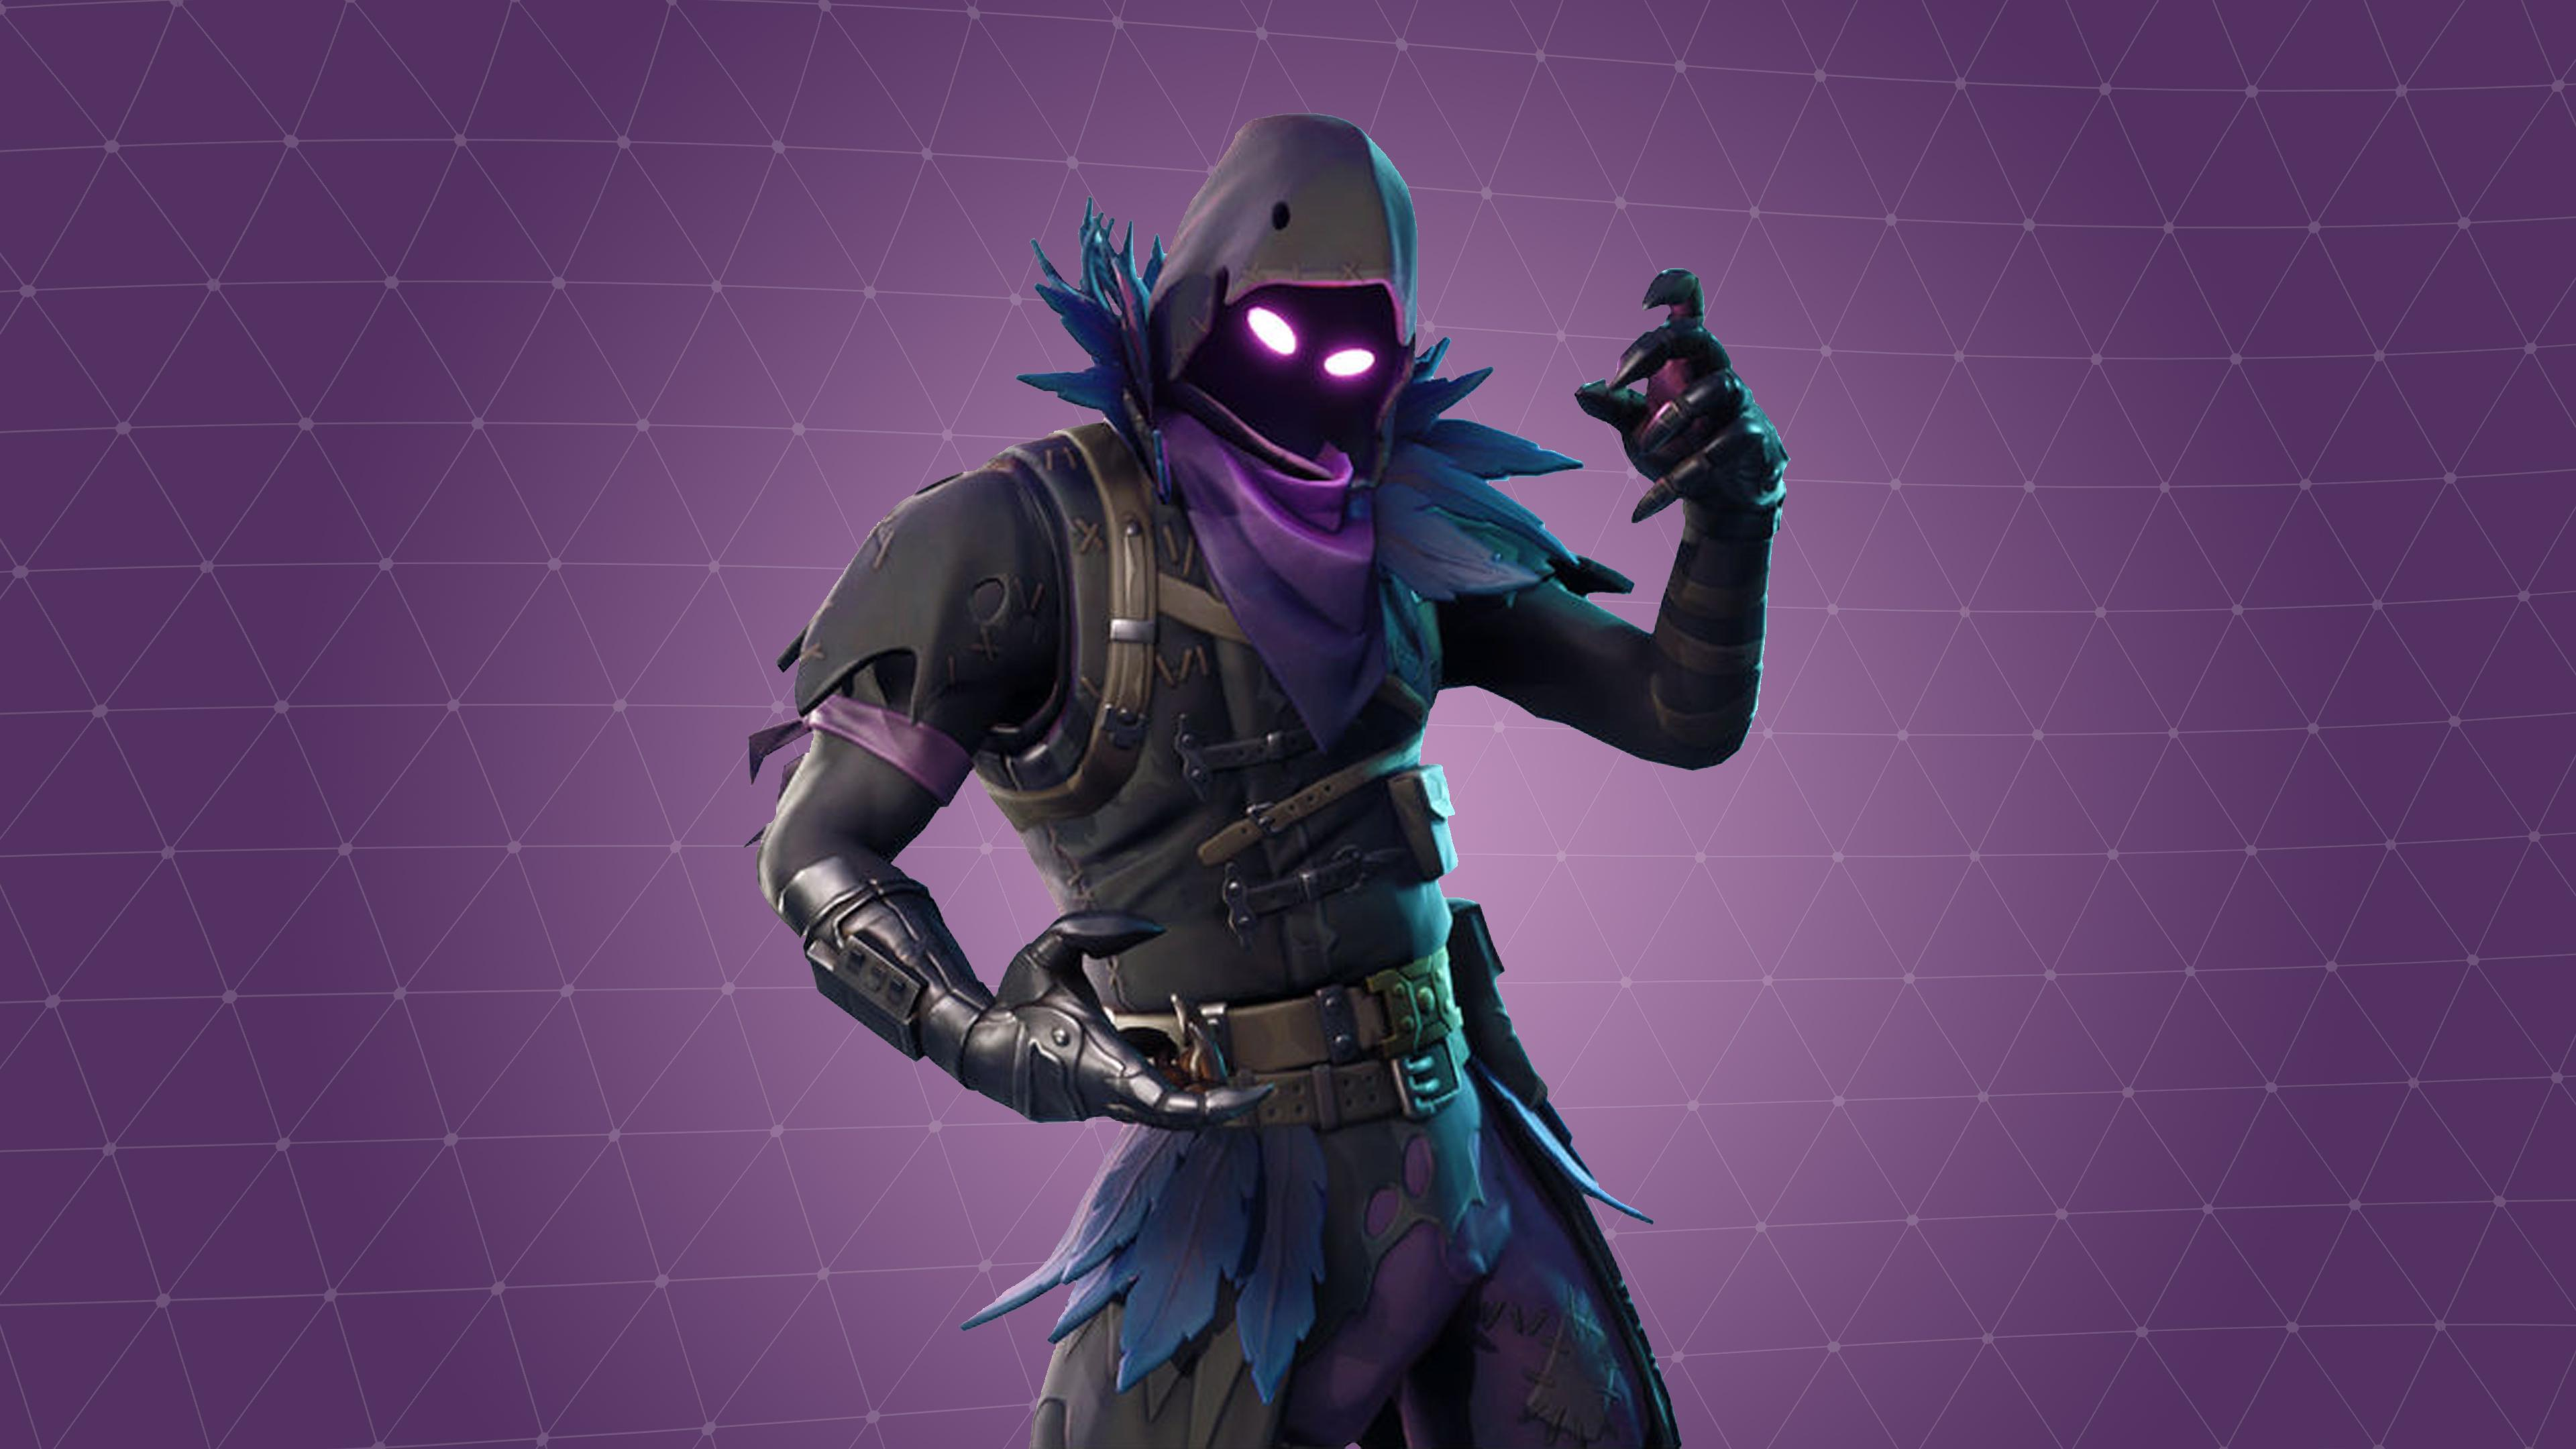 Animated Fortnite Wallpapers Top Free Animated Fortnite